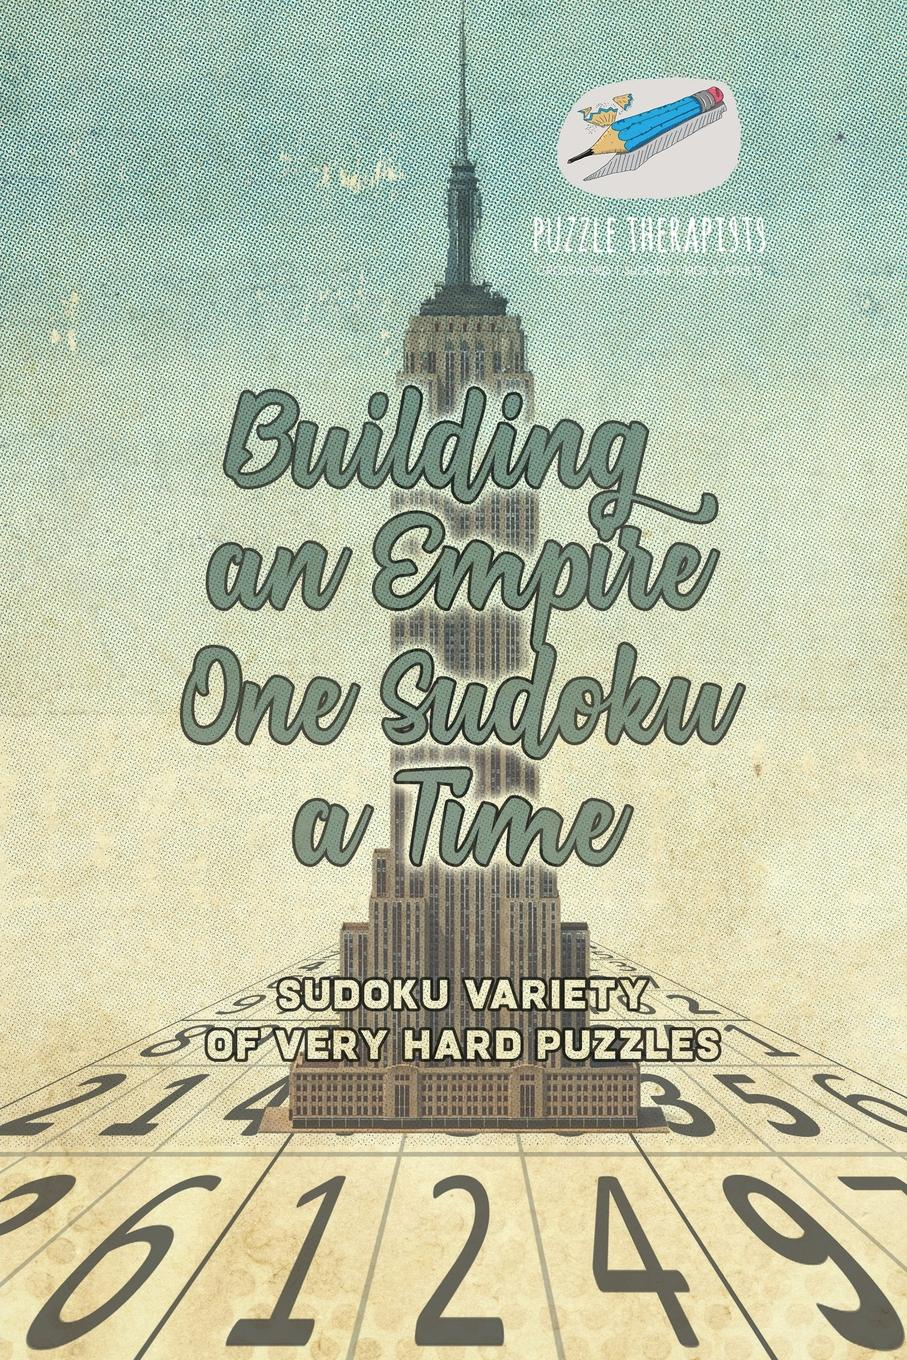 Puzzle Therapist Building an Empire One Sudoku a Time . Sudoku Variety of Very Hard Puzzles puzzle therapist one a day sudoku for the utterly obsessed large print puzzles for adults